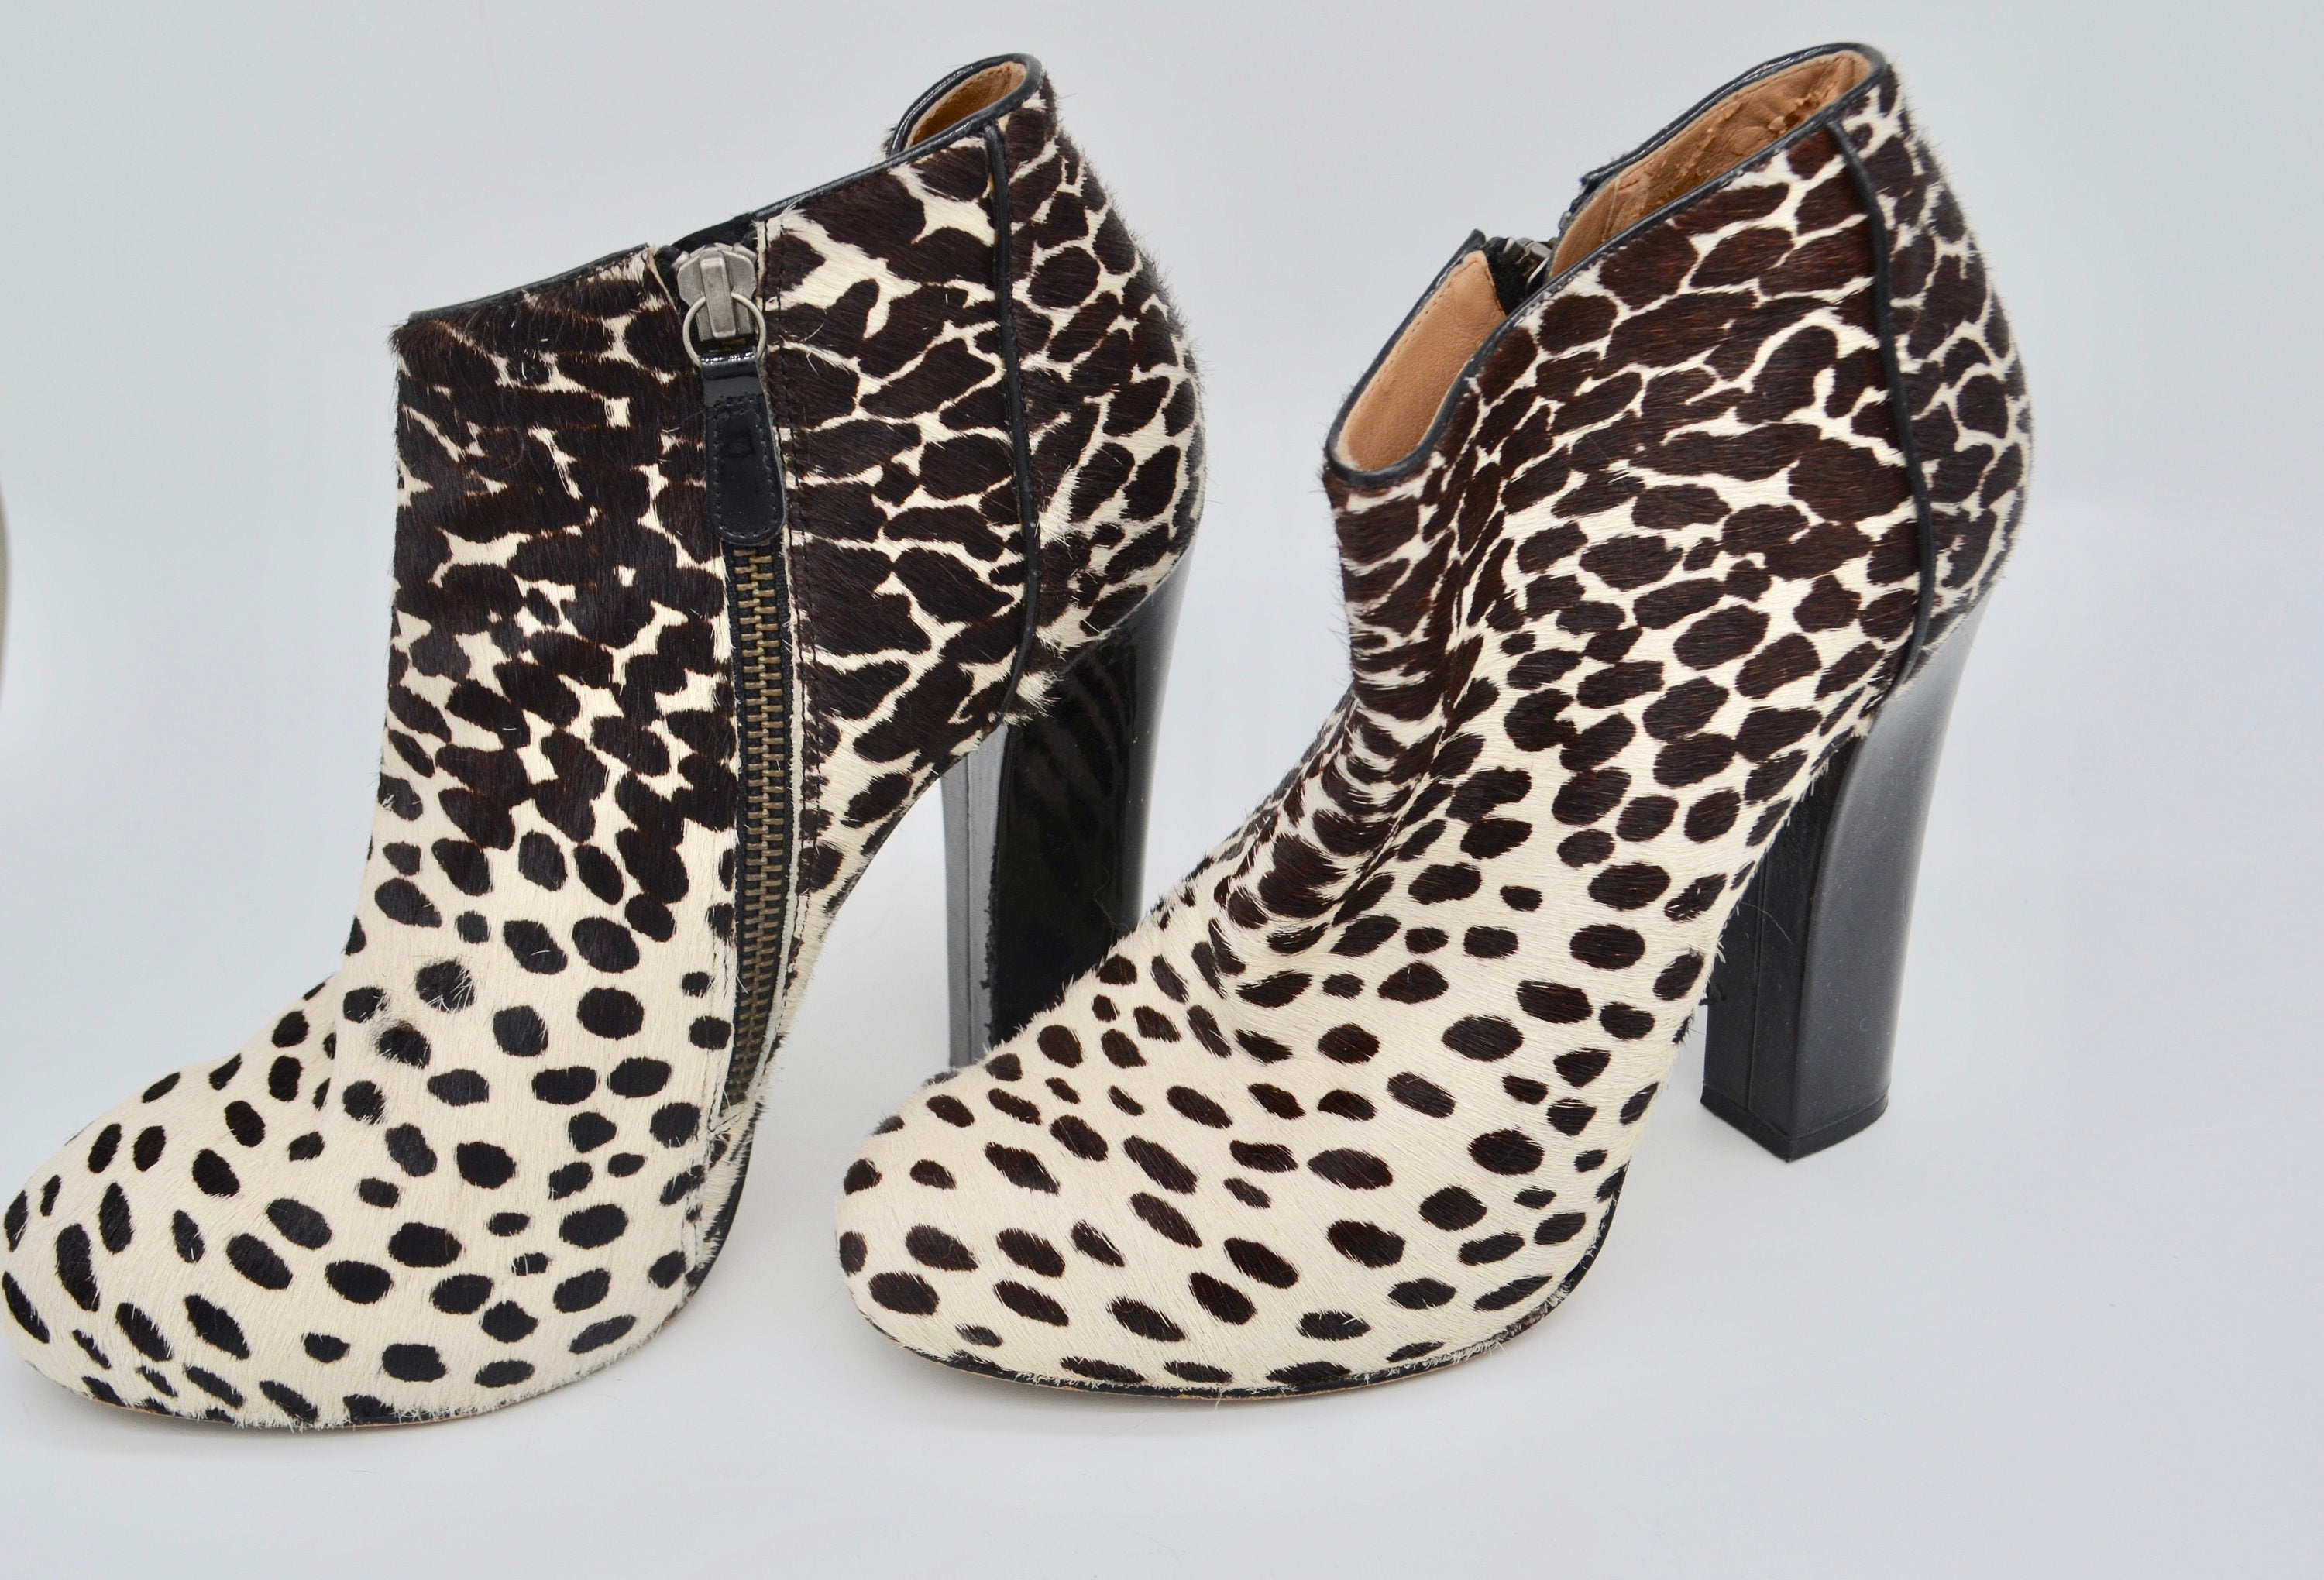 Anne Klein Animal Print Ankle Boots Leather Leopard-Print Calf Hair Booties Bohemian Shoes Autumn